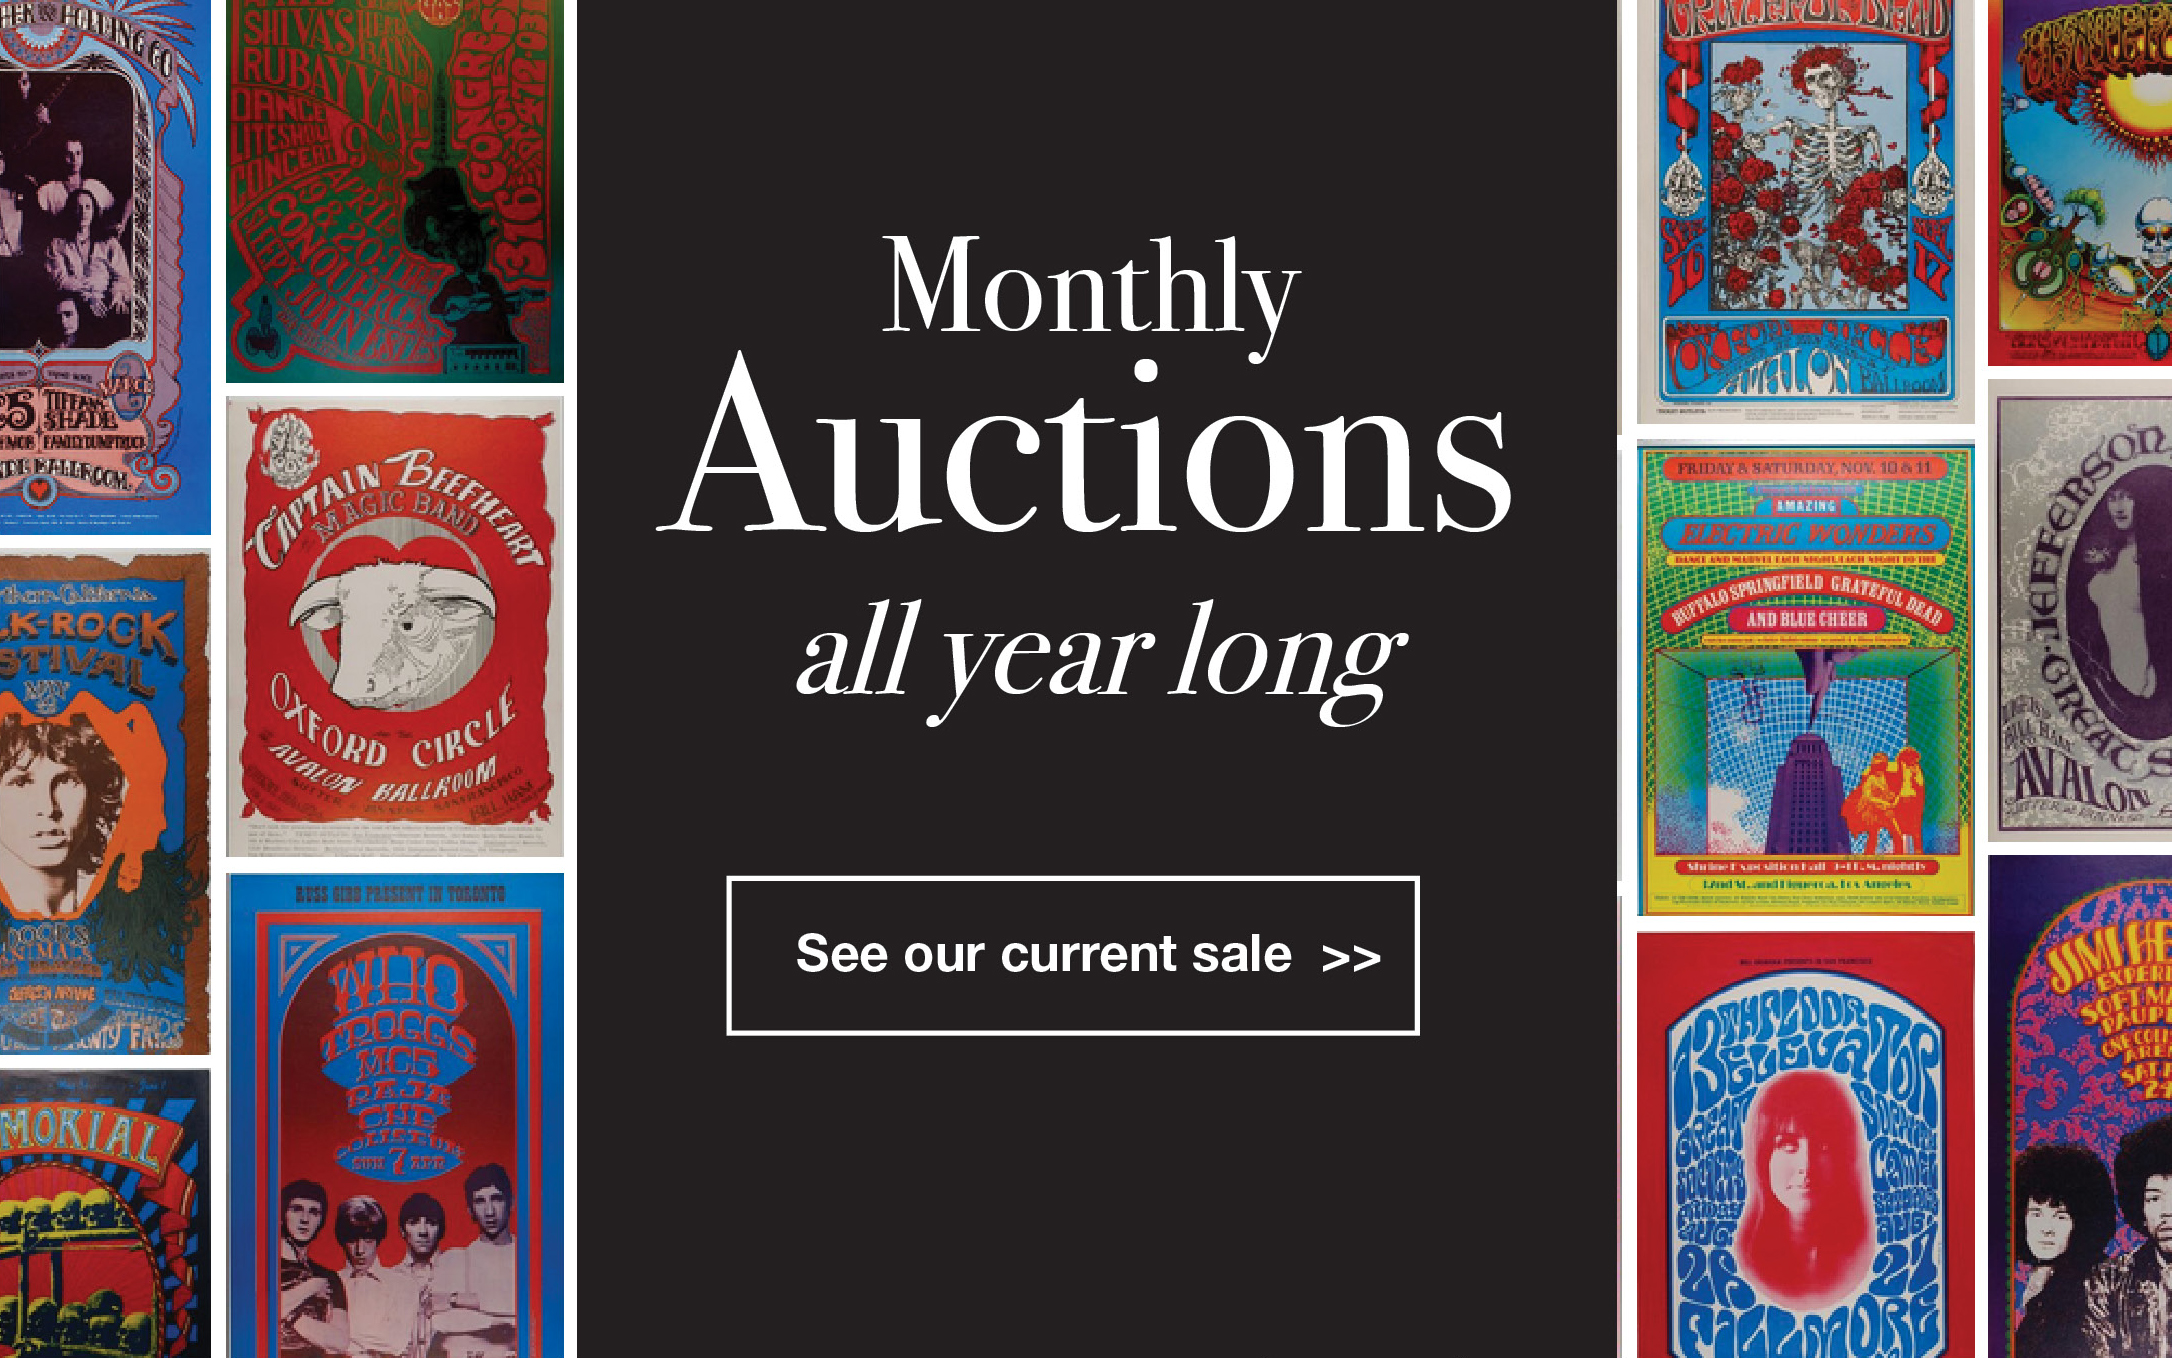 Monthly auctions all year long. See our current sale.